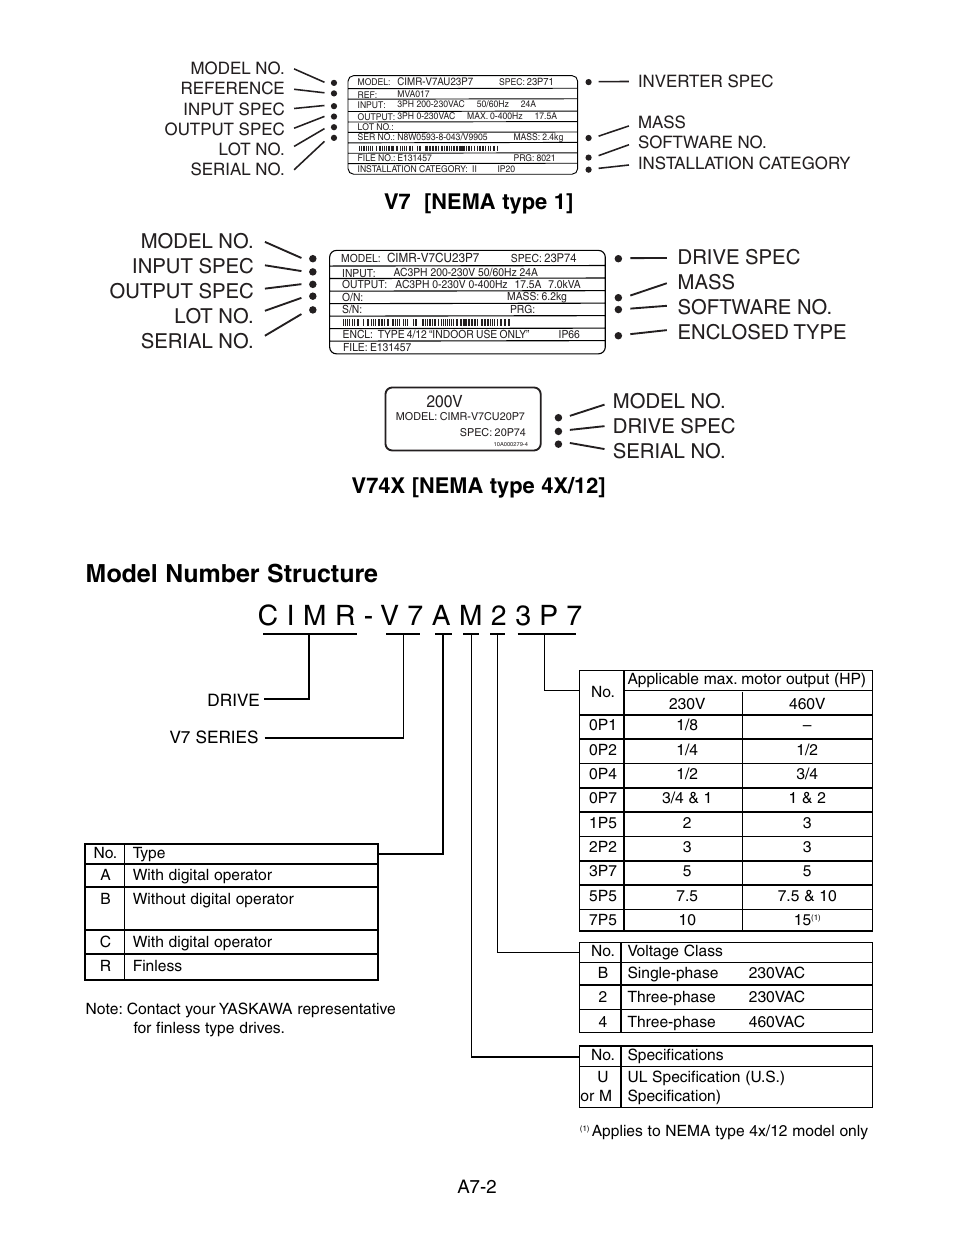 yaskawa v7 wiring diagram wiring diagram libraries yaskawa v7 wiring diagram wiring diagrams onemodel number structure model no drive spec serial no